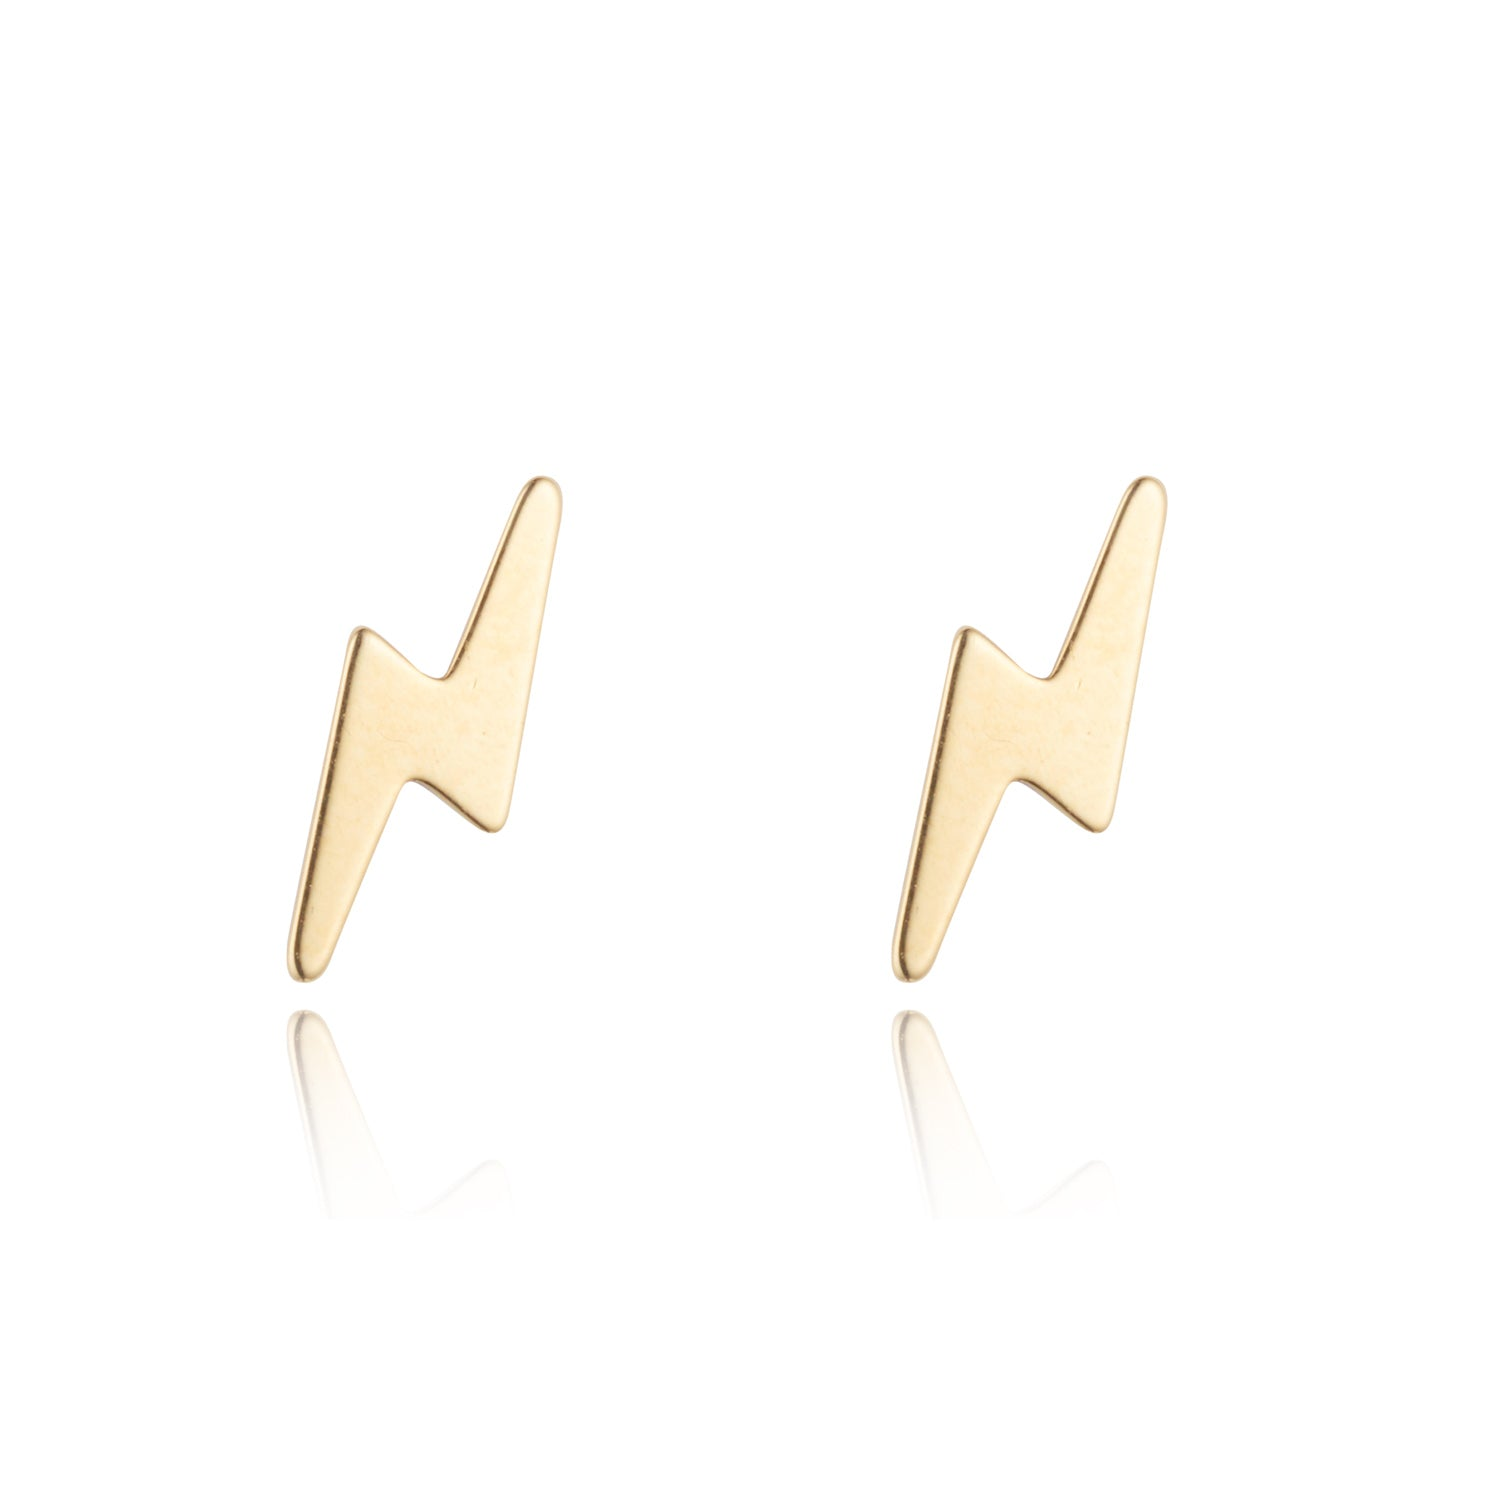 9kt Gold Lightening Bolt Studs - MoMuse Jewellery